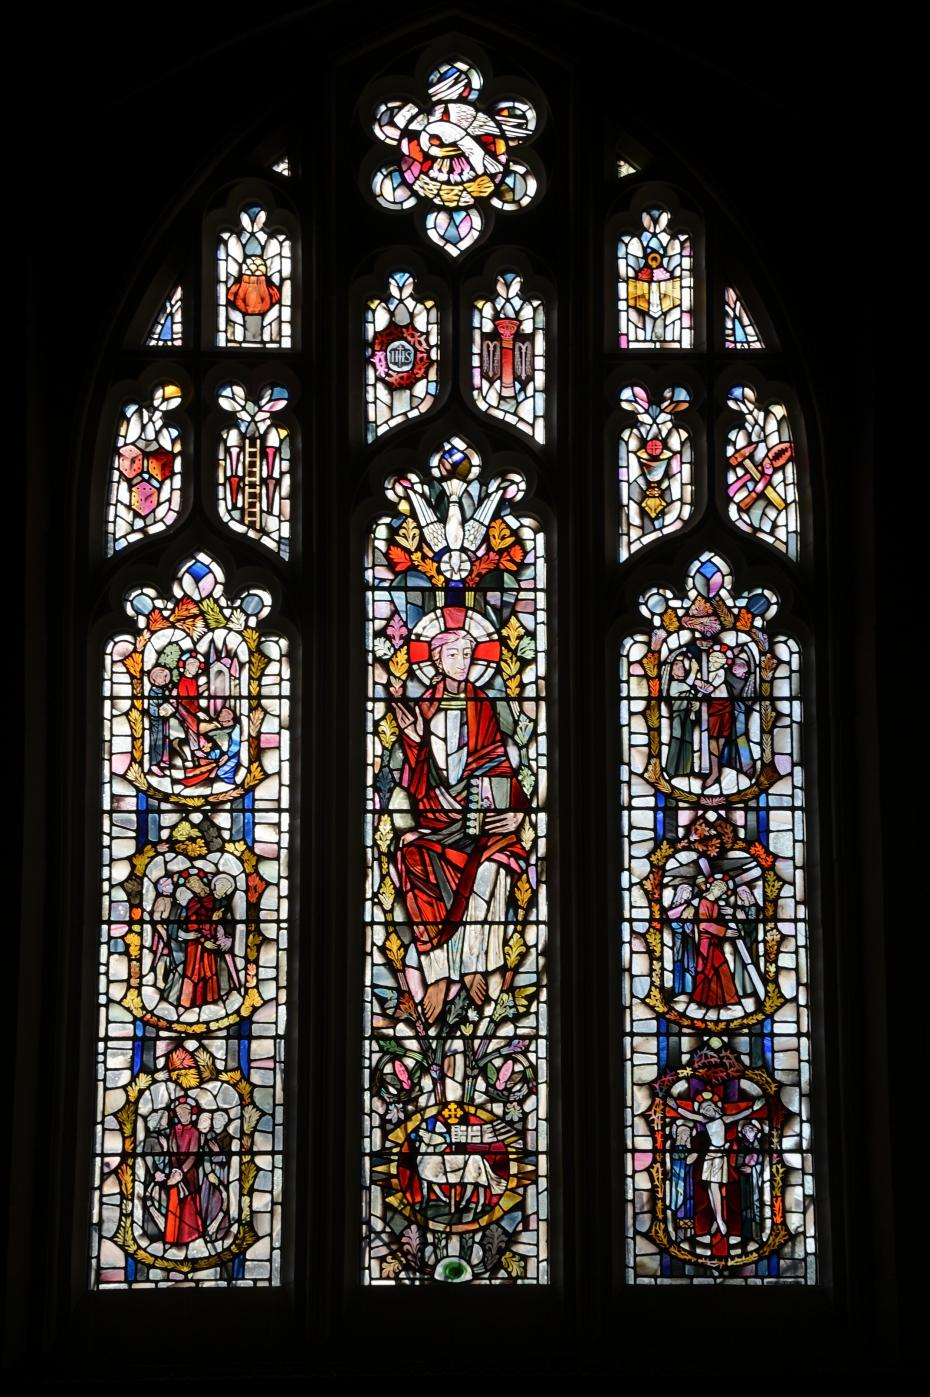 The stained glass window, photographed by Phil Mynott, 2015 (archive reference: GCPH 2/4/16).